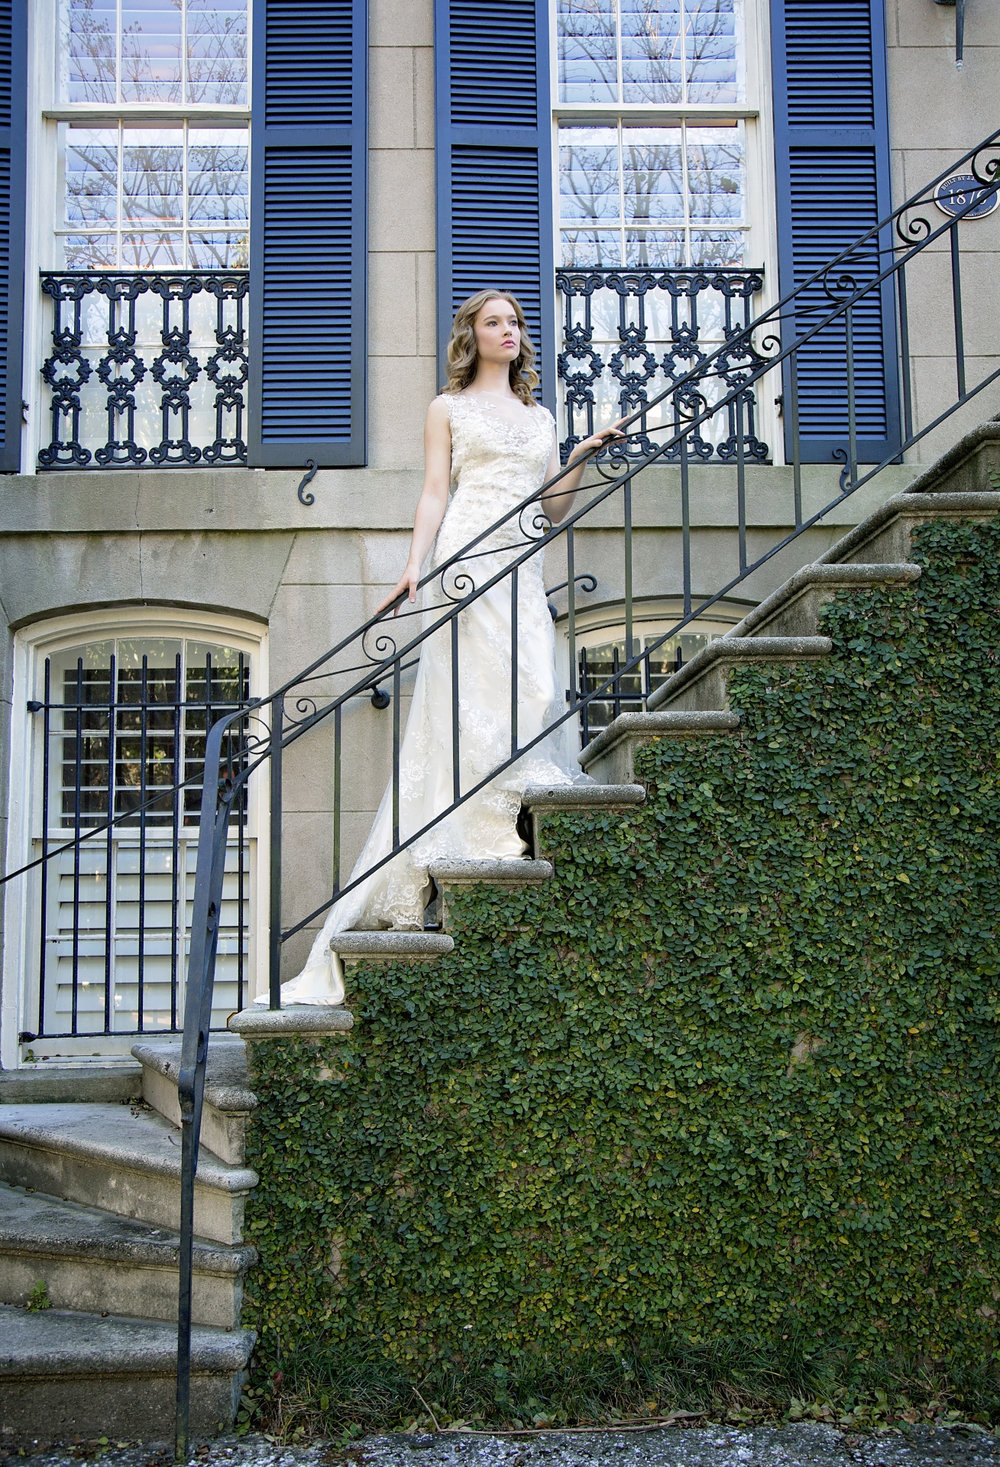 rustik-image-photography-savannah-wedding-photographer-maggie-sottero-tami-savannah-bridal-boutique-ivory-and-beau-bridal-boutique-savannah-wedding-florist-savannah-bridal-shop-savannah-weddings-savannah-gowns-4.jpg